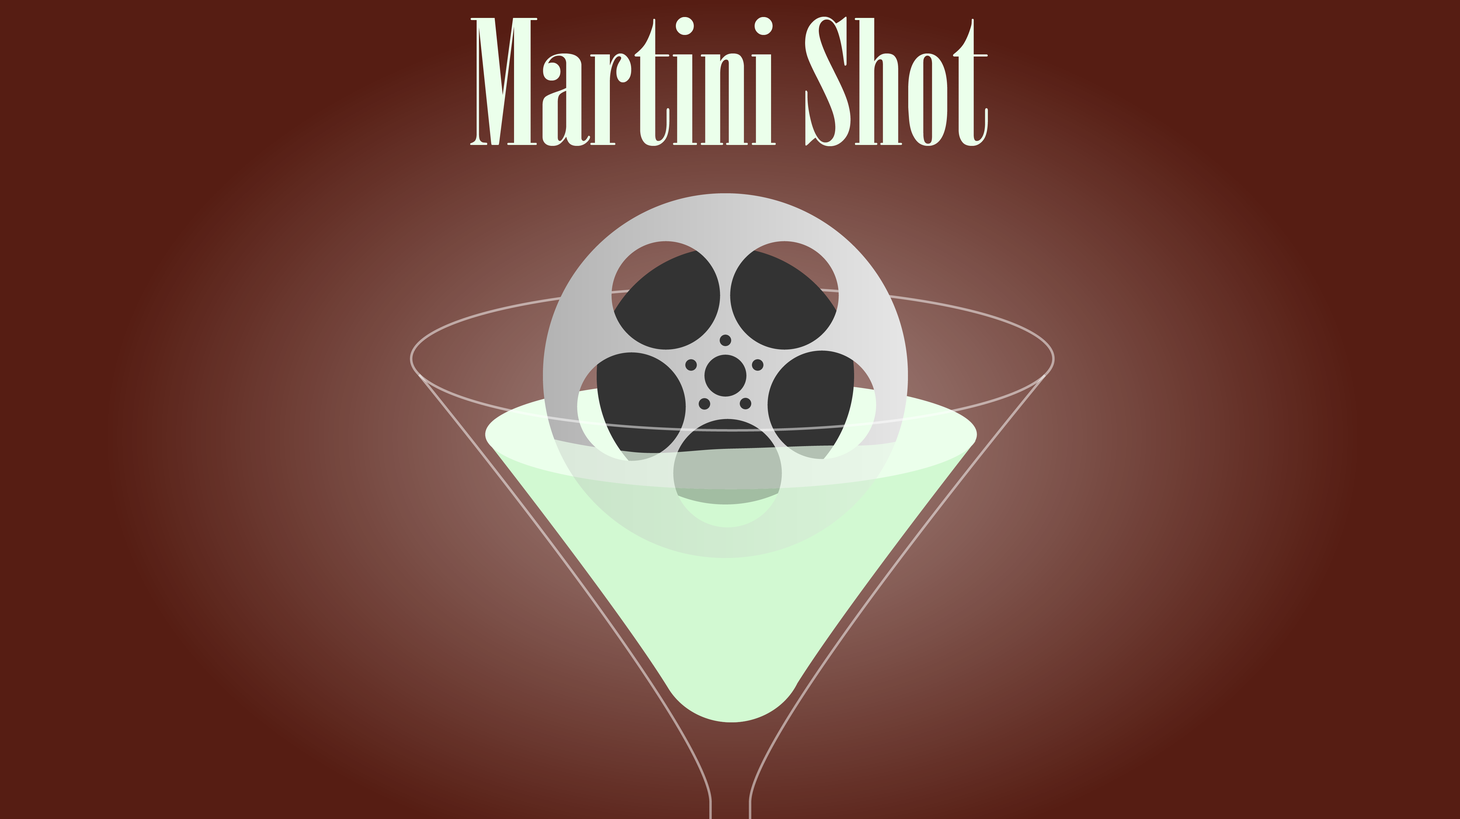 Today's Martini Shot is all about Beyoncé. Well, it's about Rob and Beyoncé. That came out wrong. It's about money and Beyoncé.